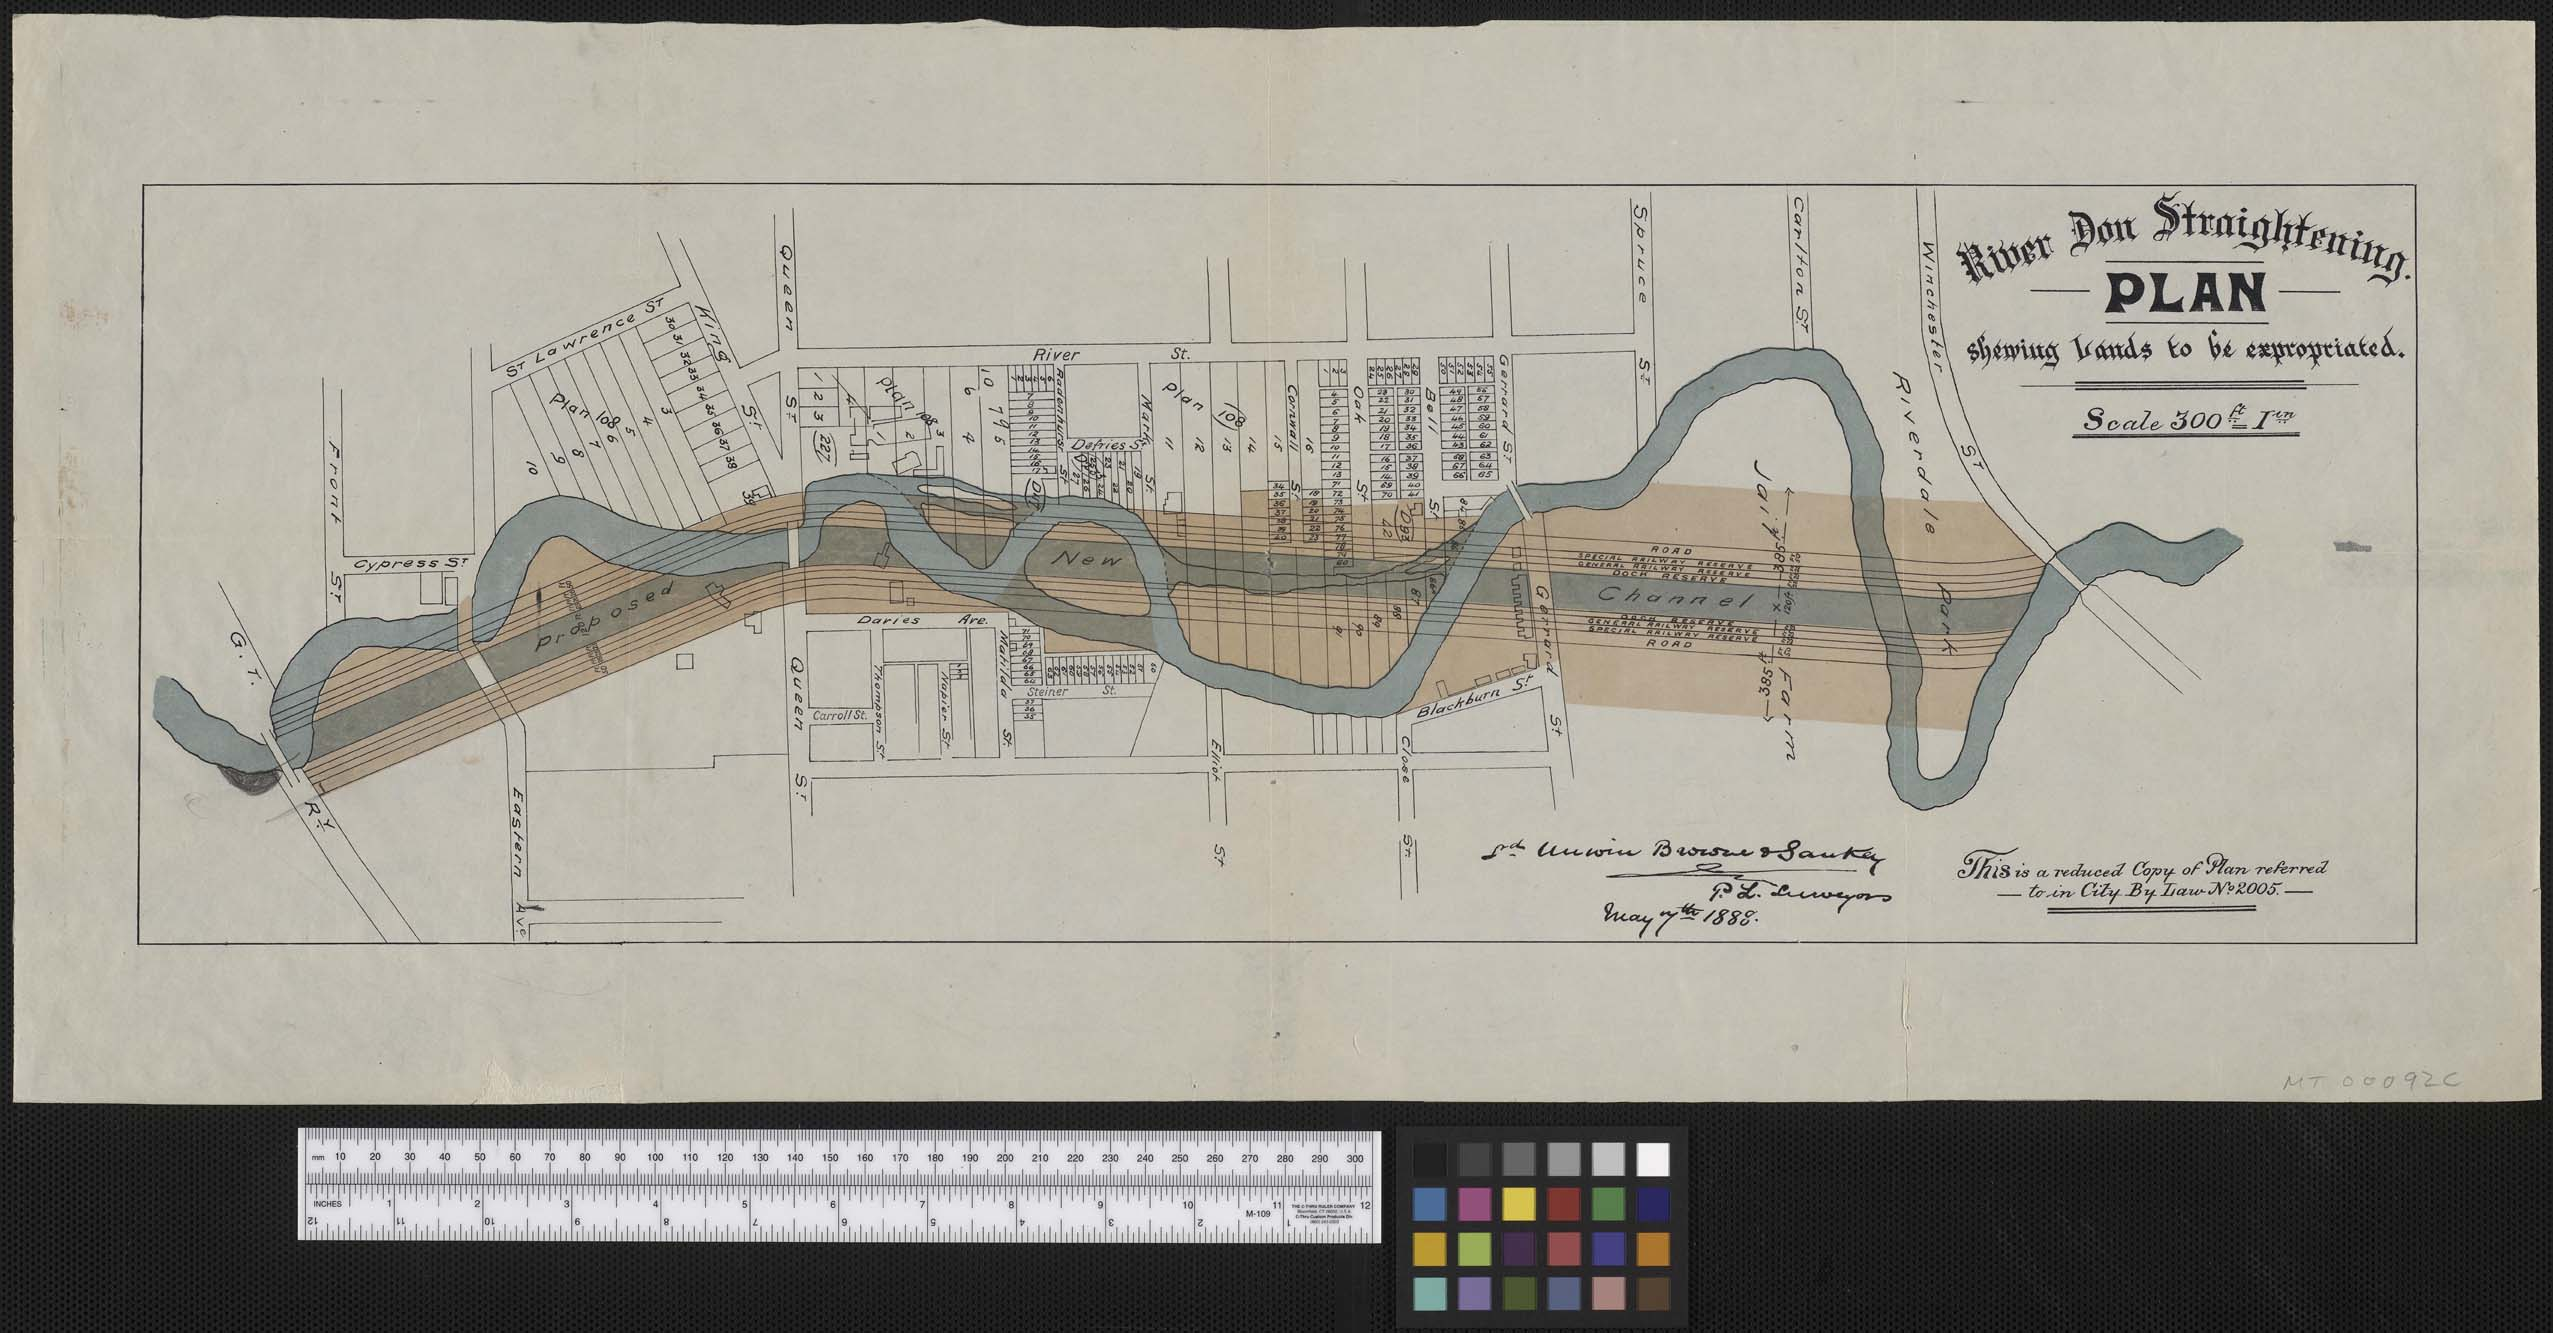 River Don Straightening Plan, showing lands to be ...